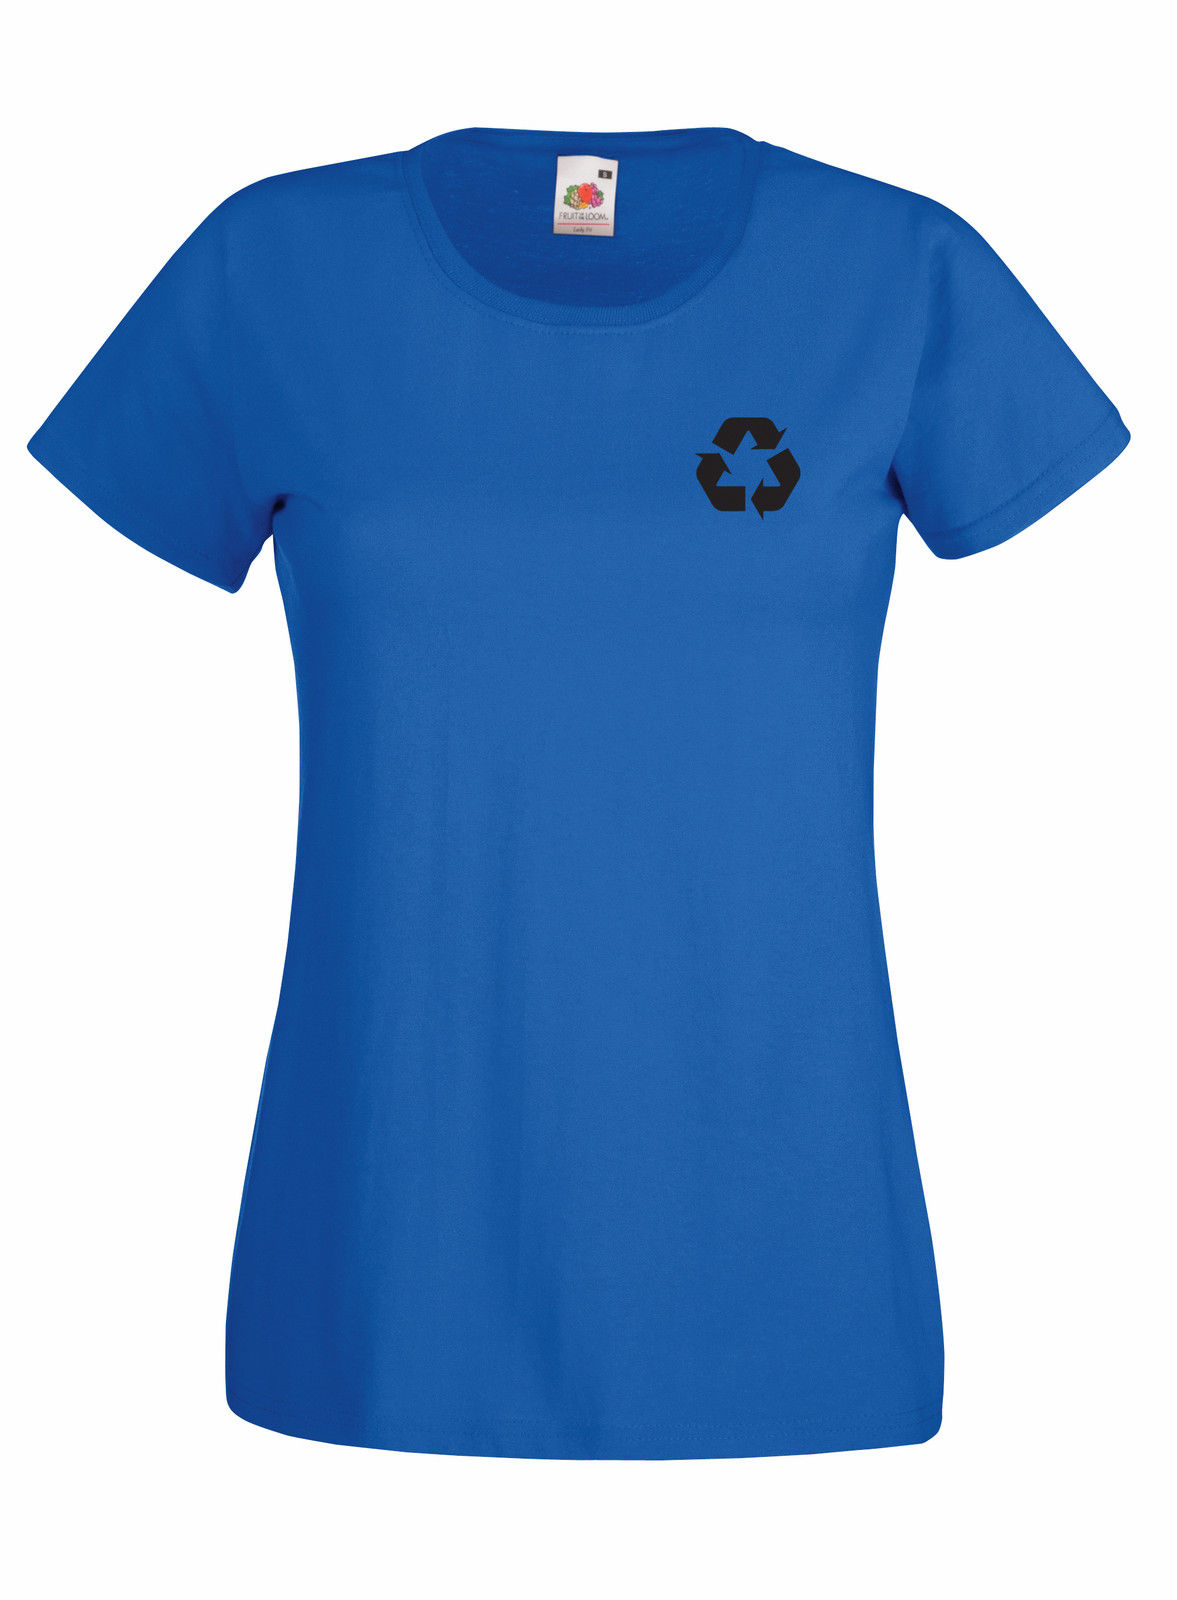 Recycling Symbol Graphic High Quality Ladies Skinny 100